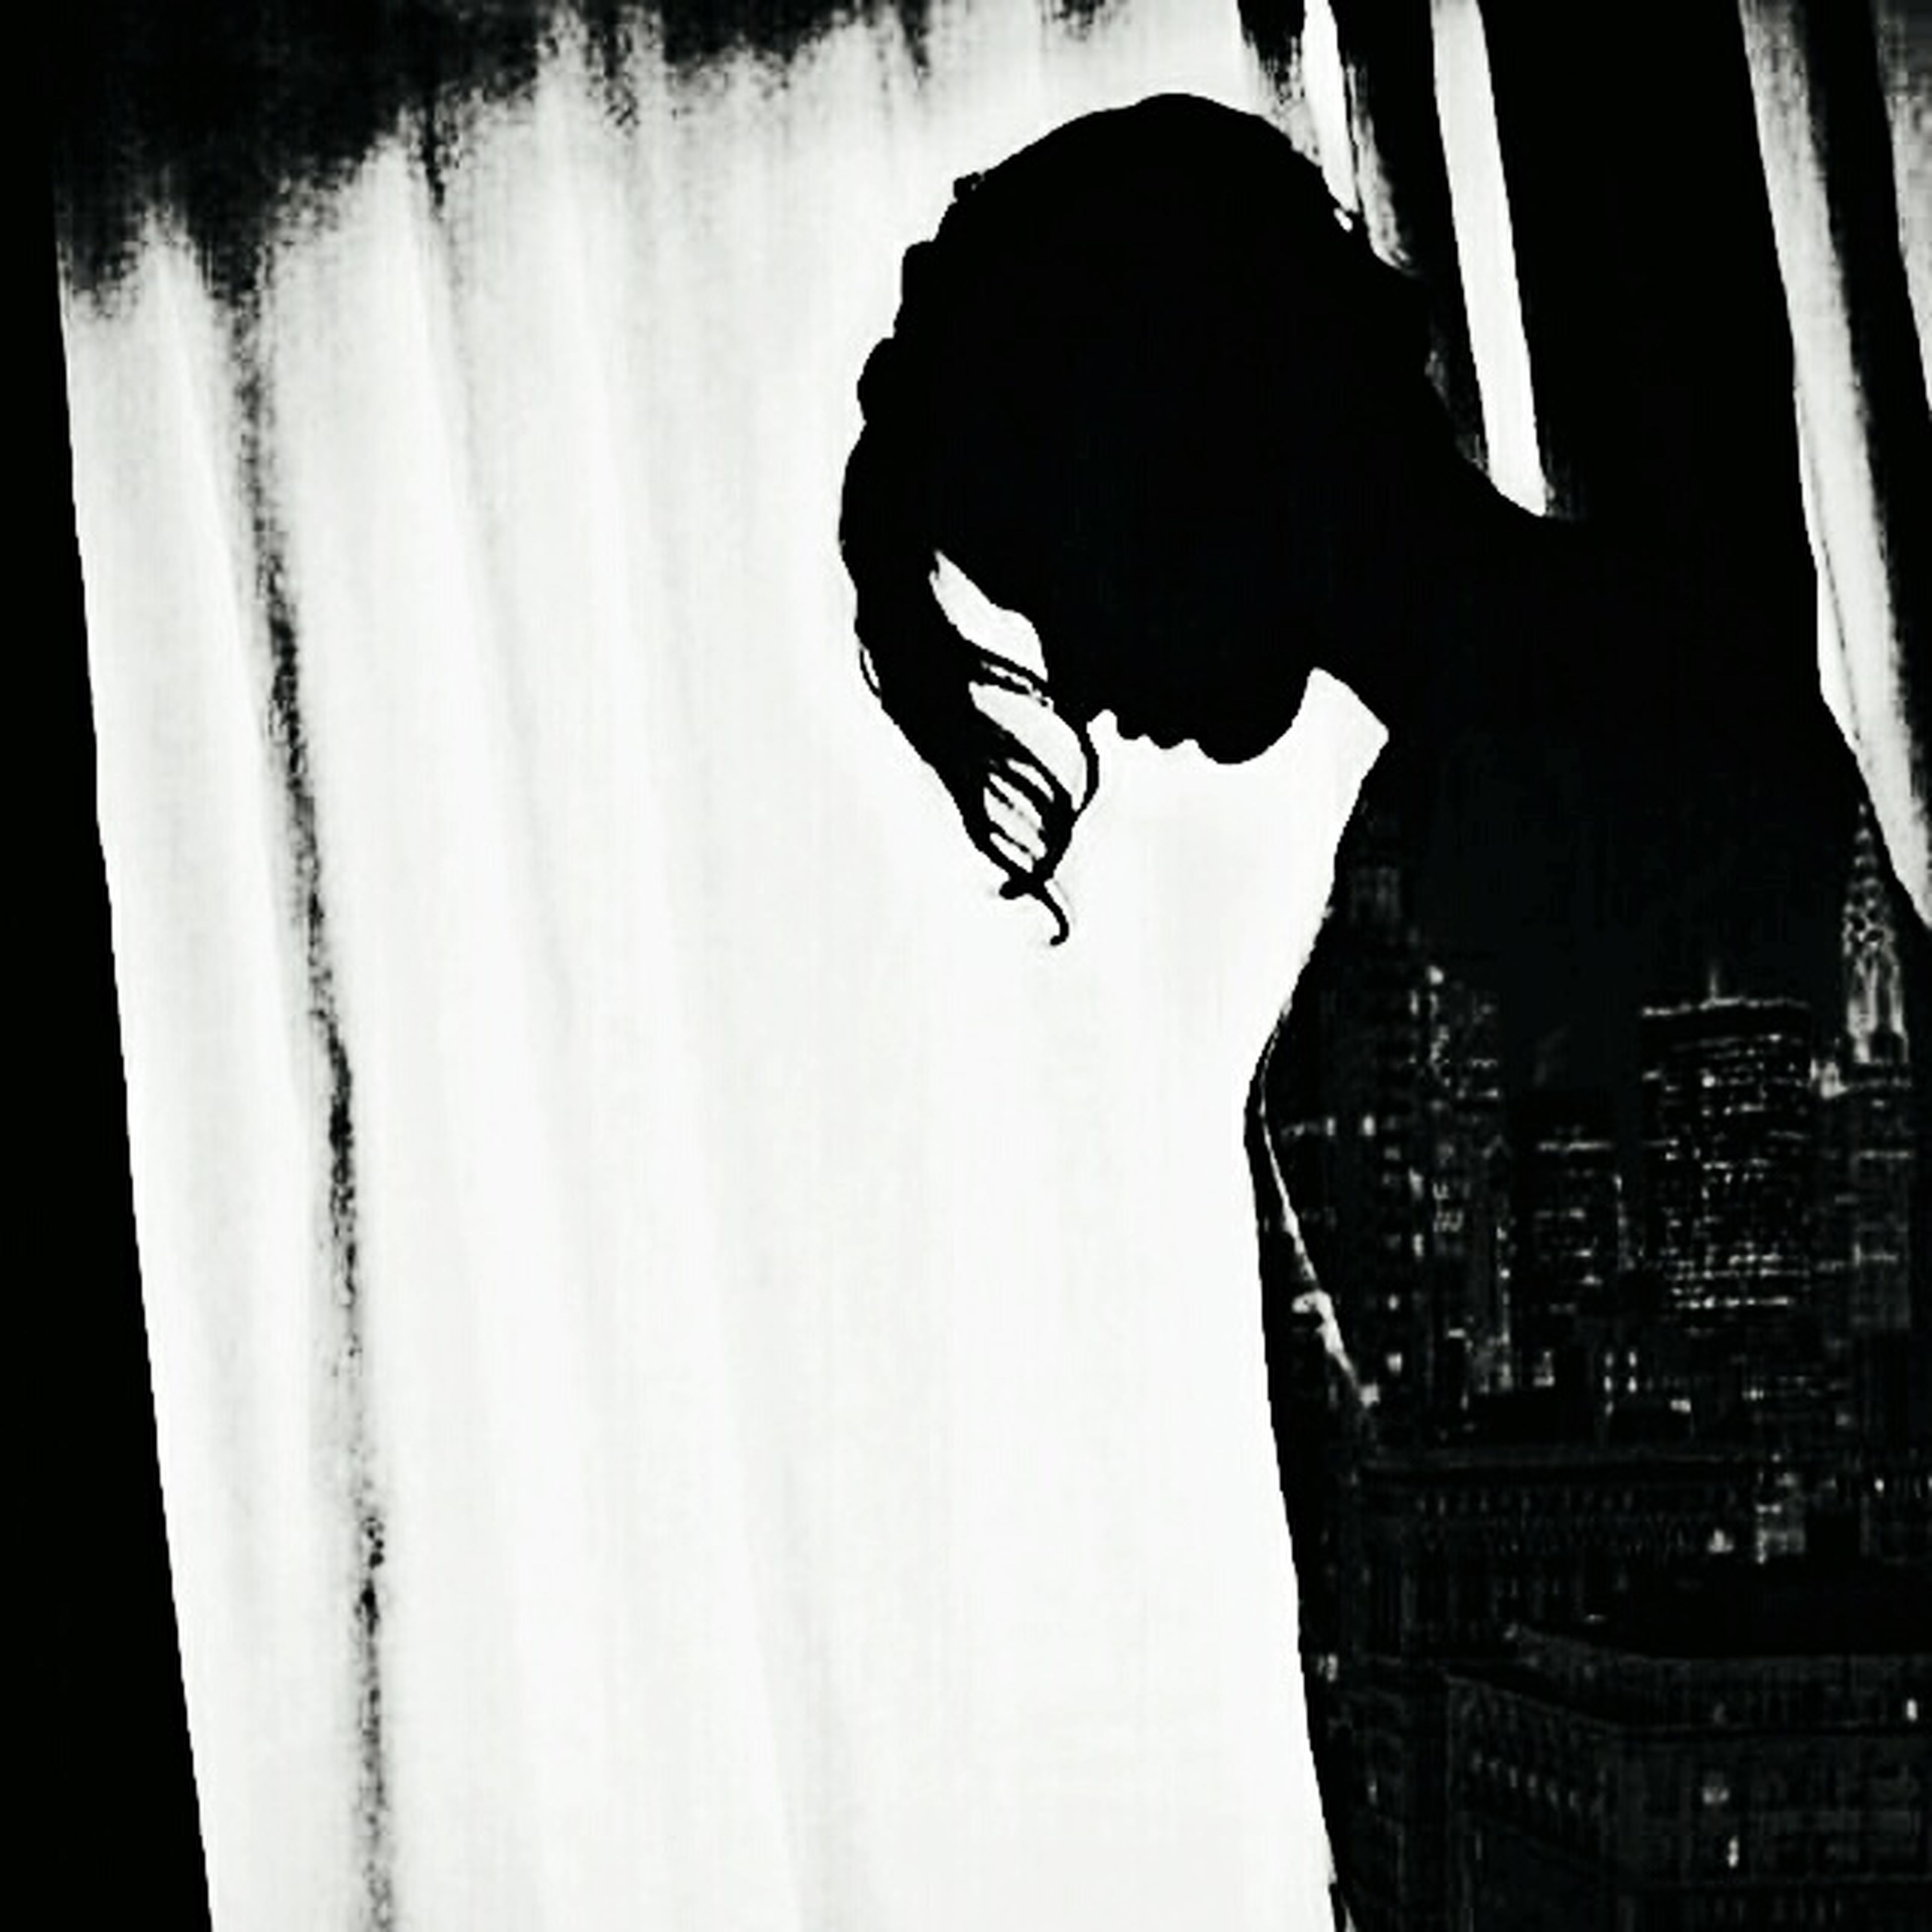 curtain, side view, silhouette, indoors, person, holding, domestic life, profile